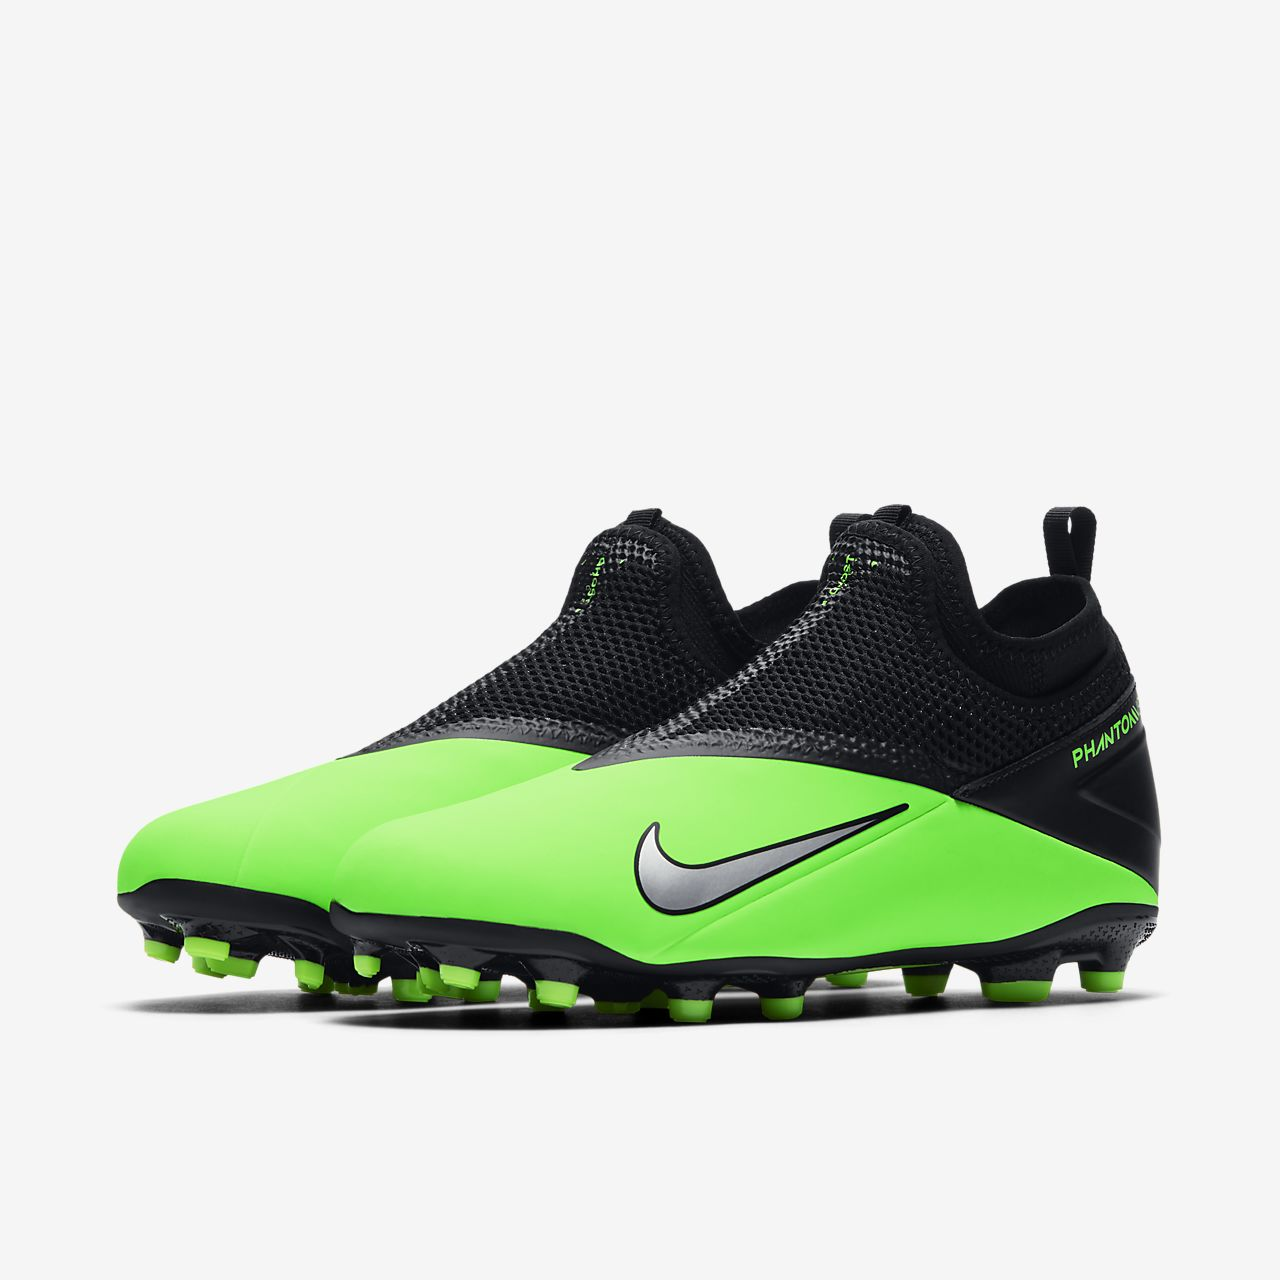 NIKE PHANTOM VISION 2 ACADEMY DYNAMIC FIT MG CD4059-306 JR